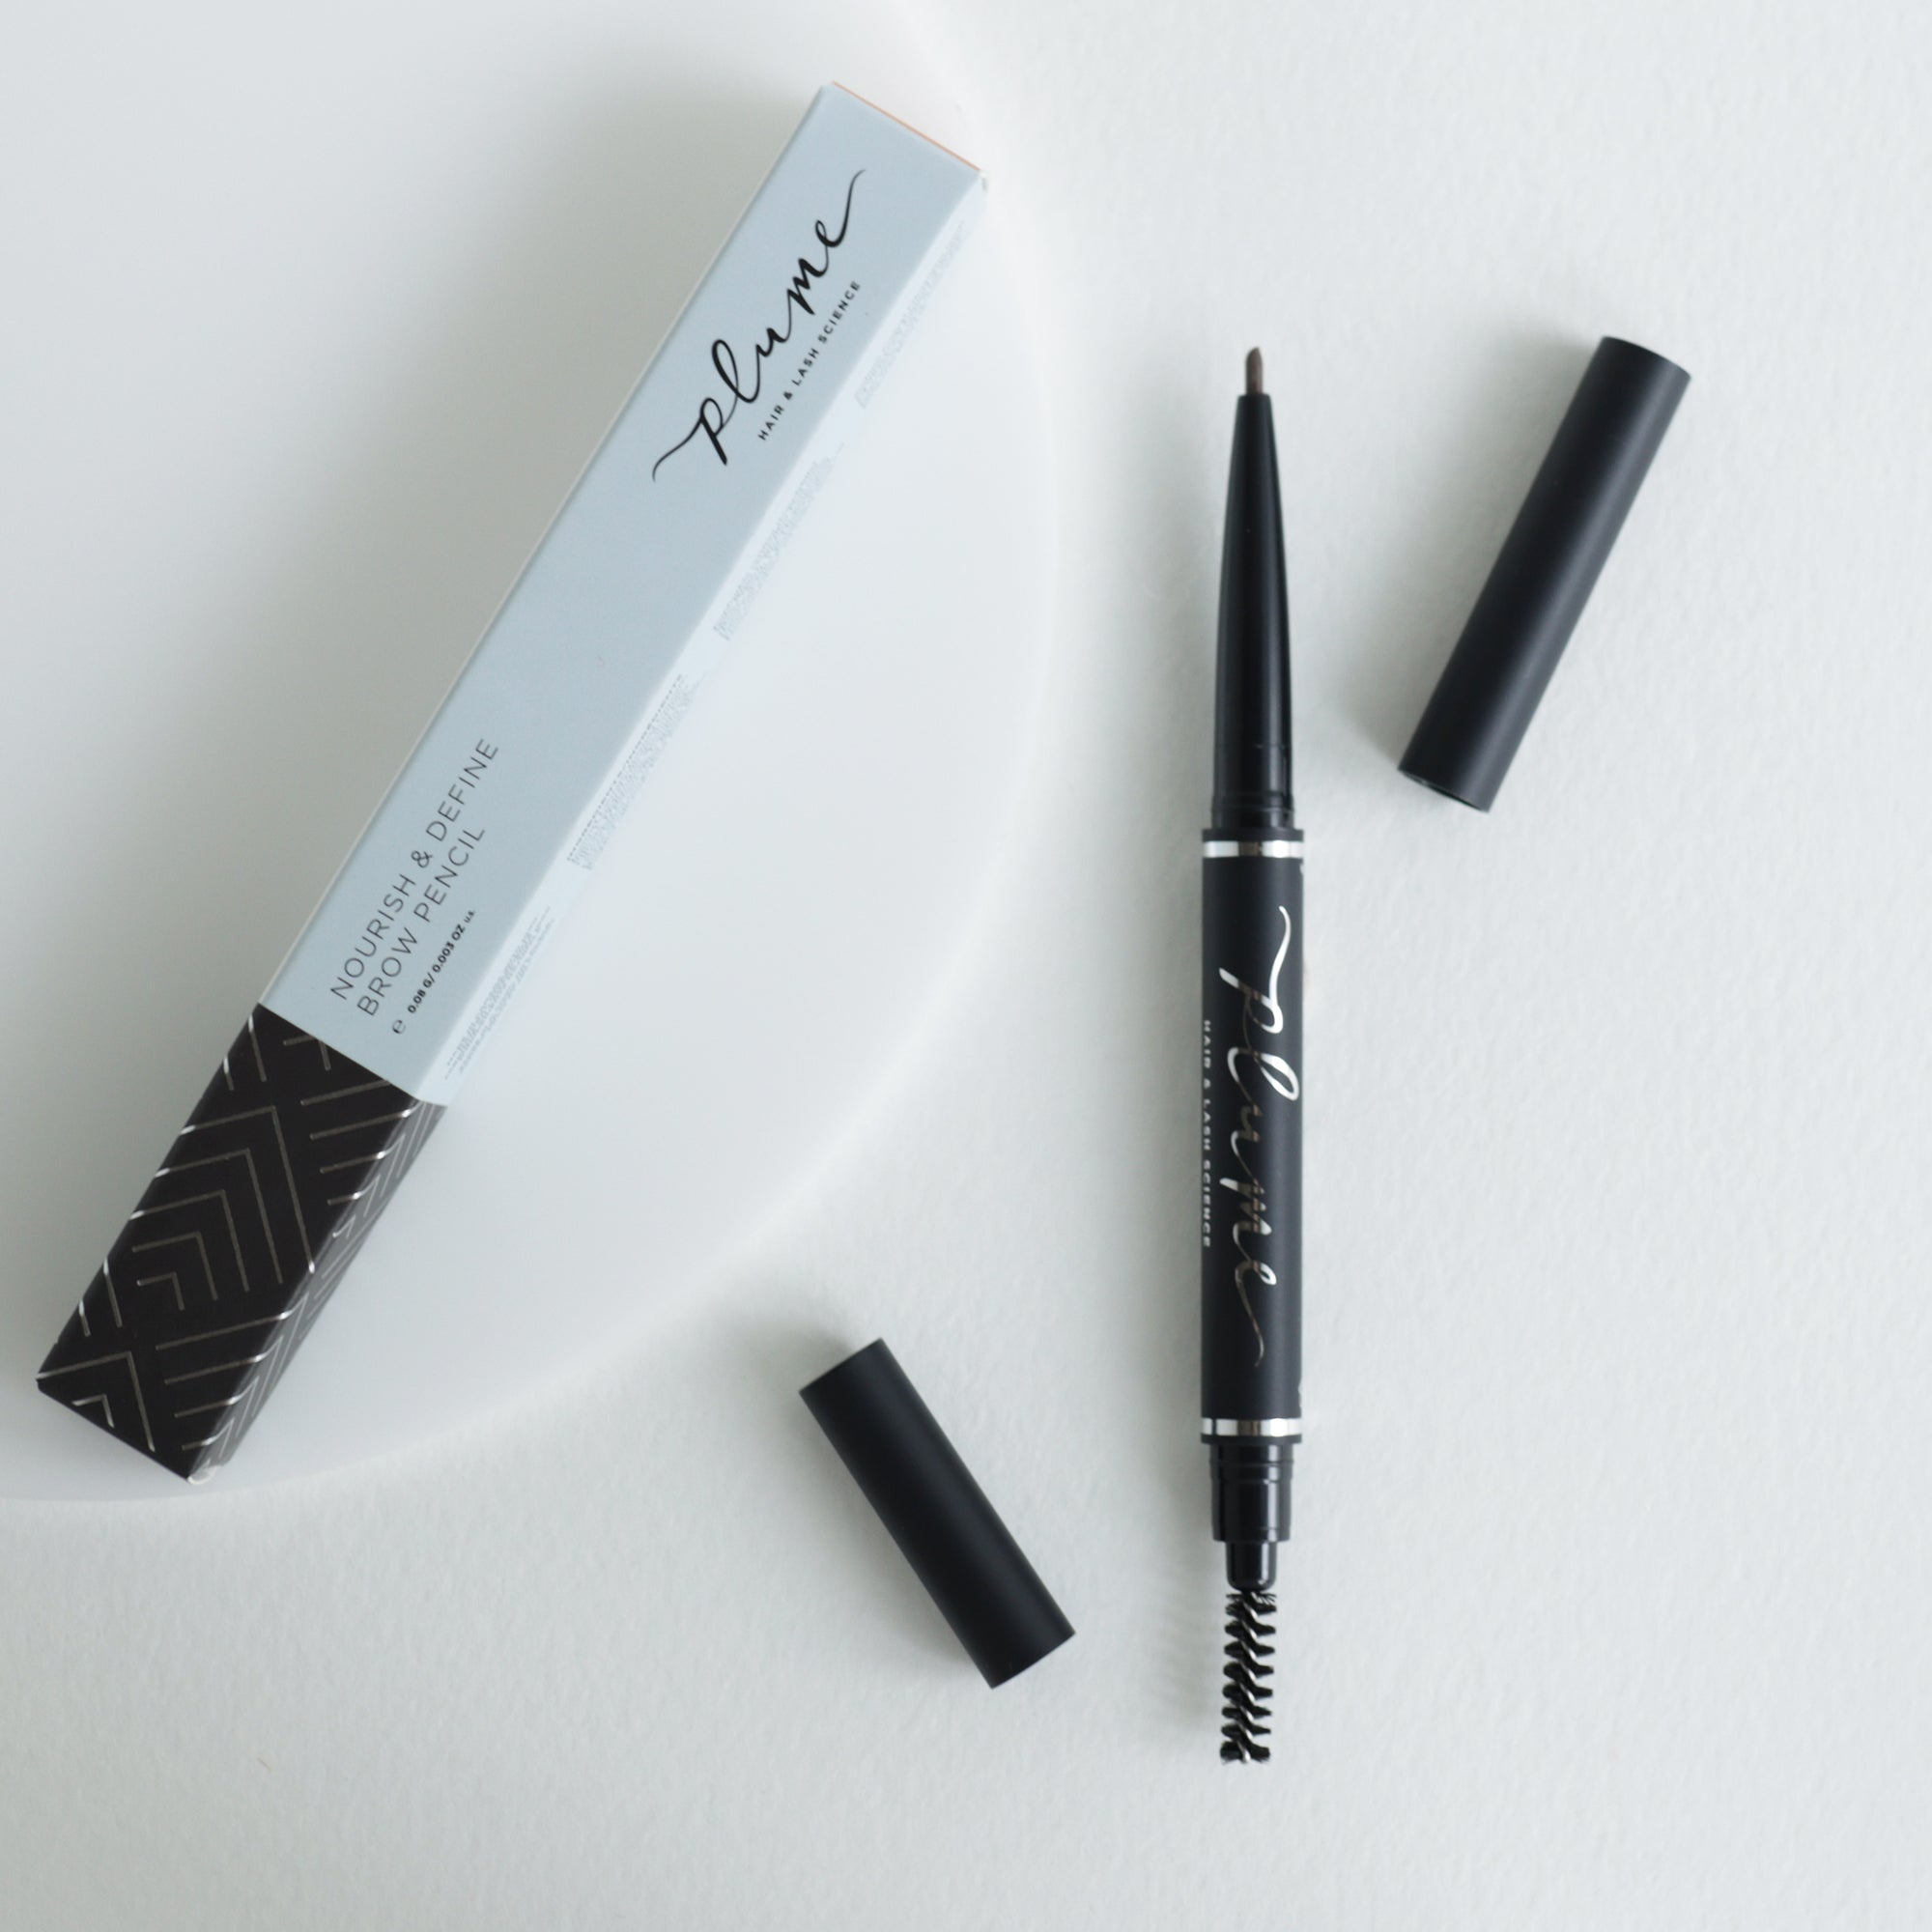 Plume Science Nourish & Define Refillable Brow Pencil